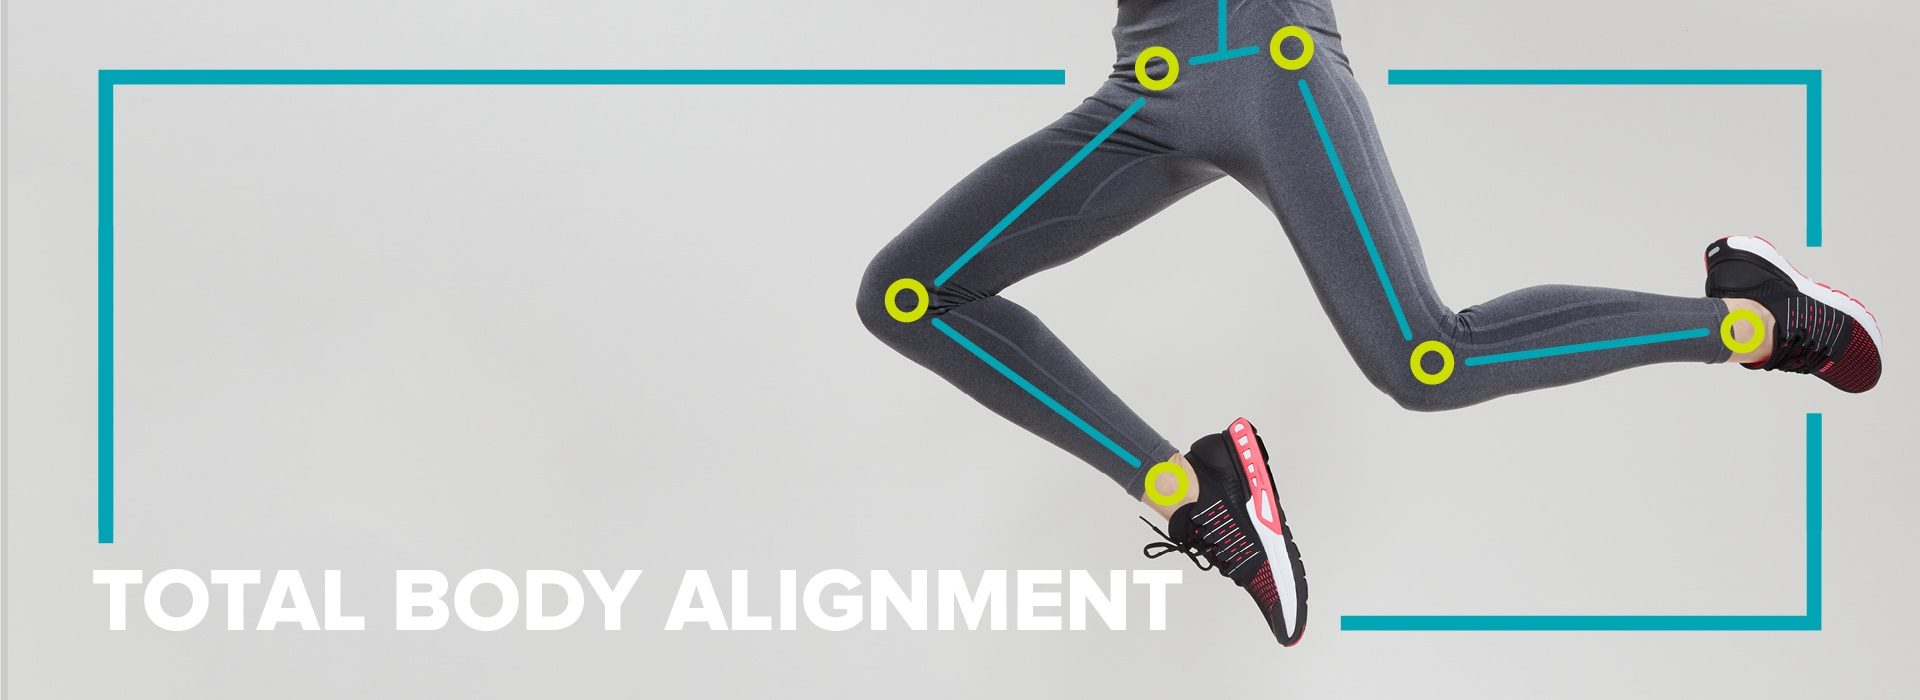 TOTAL BODY ALIGNMENT